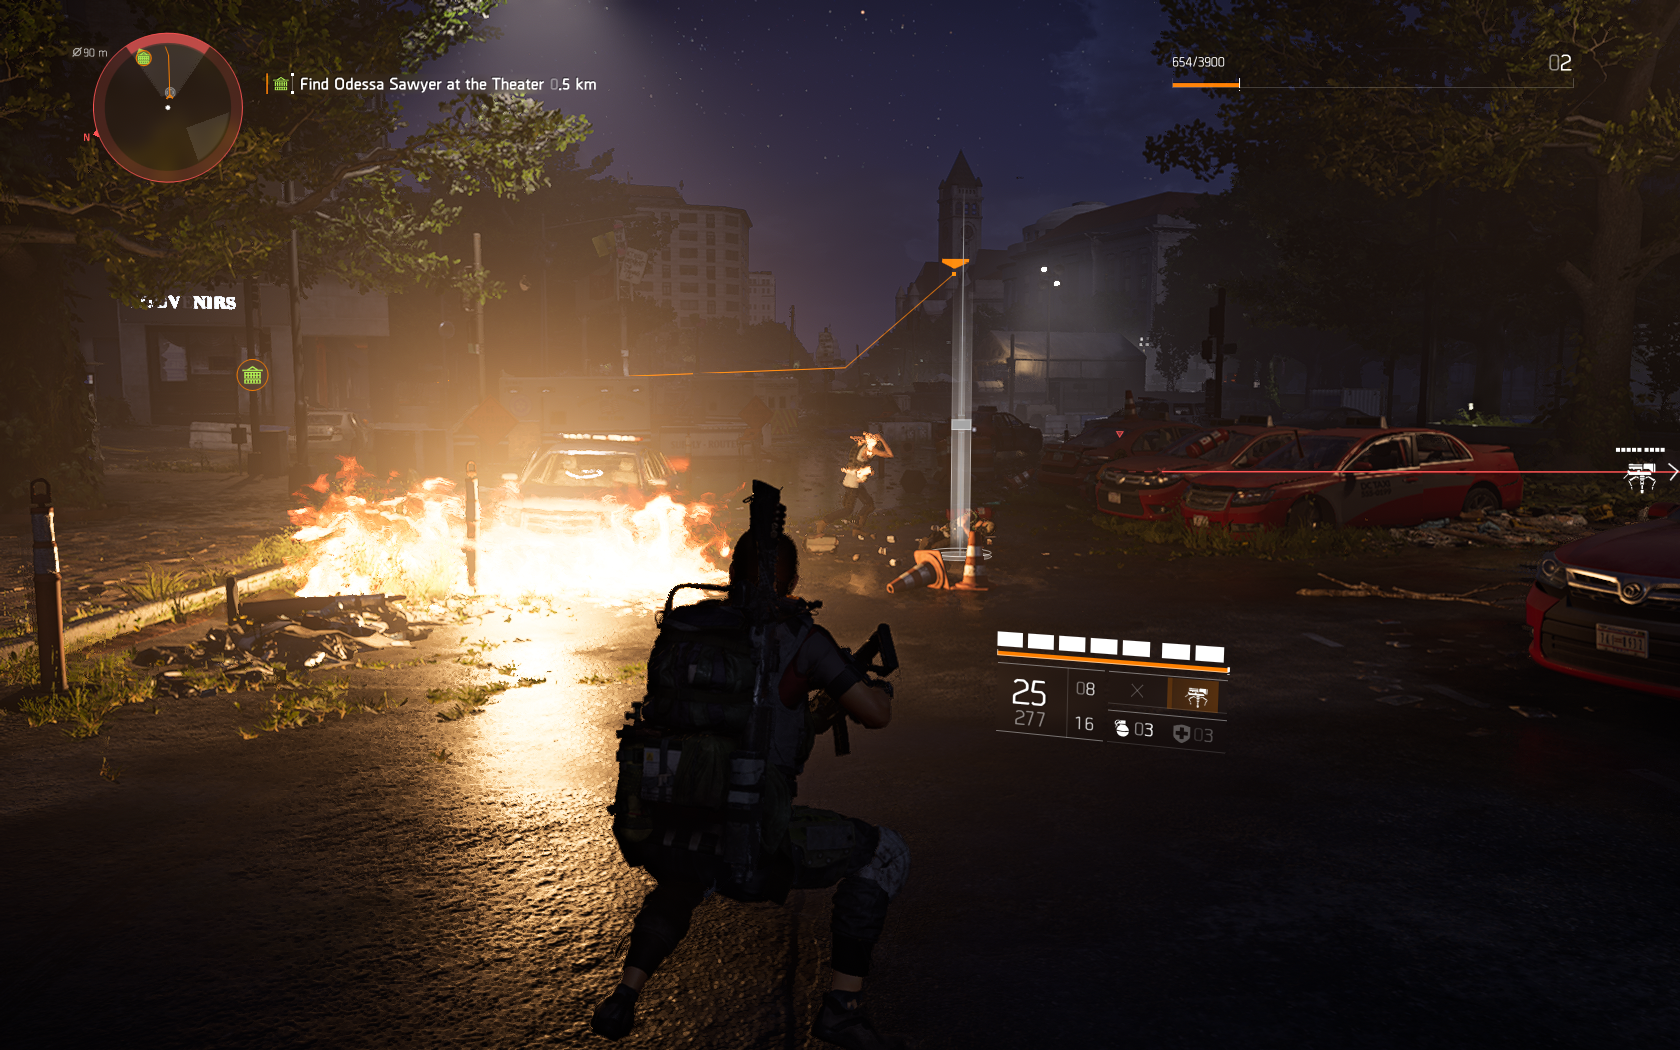 Tom Clancy's The Division 2 Screenshot 2019.03.12 - 10.59.09.00.png